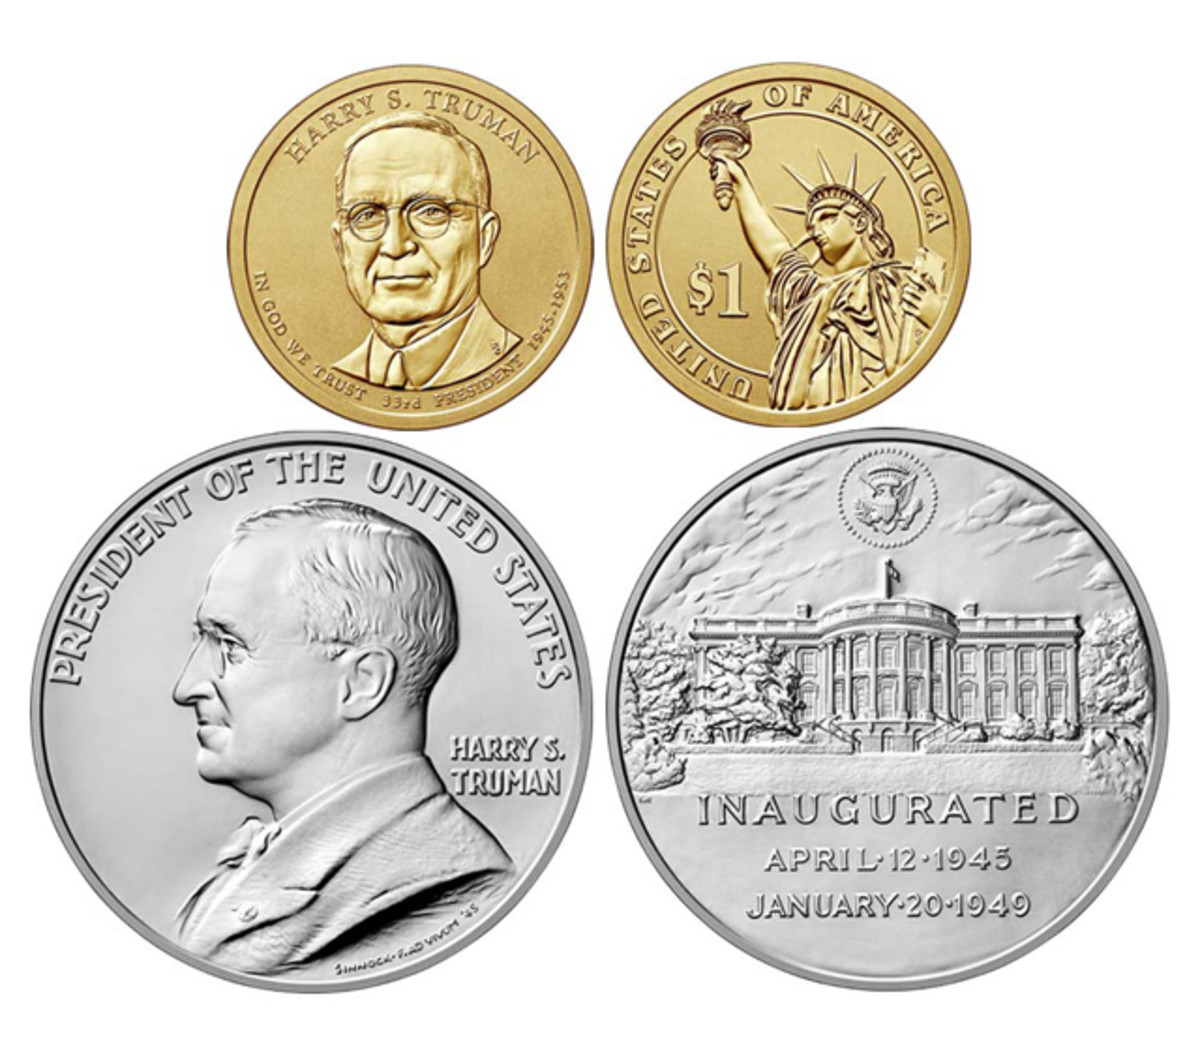 The set contains a silver Truman inauguration medal and a 2015 reverse proof Truman Presidential dollar, the first for the series.